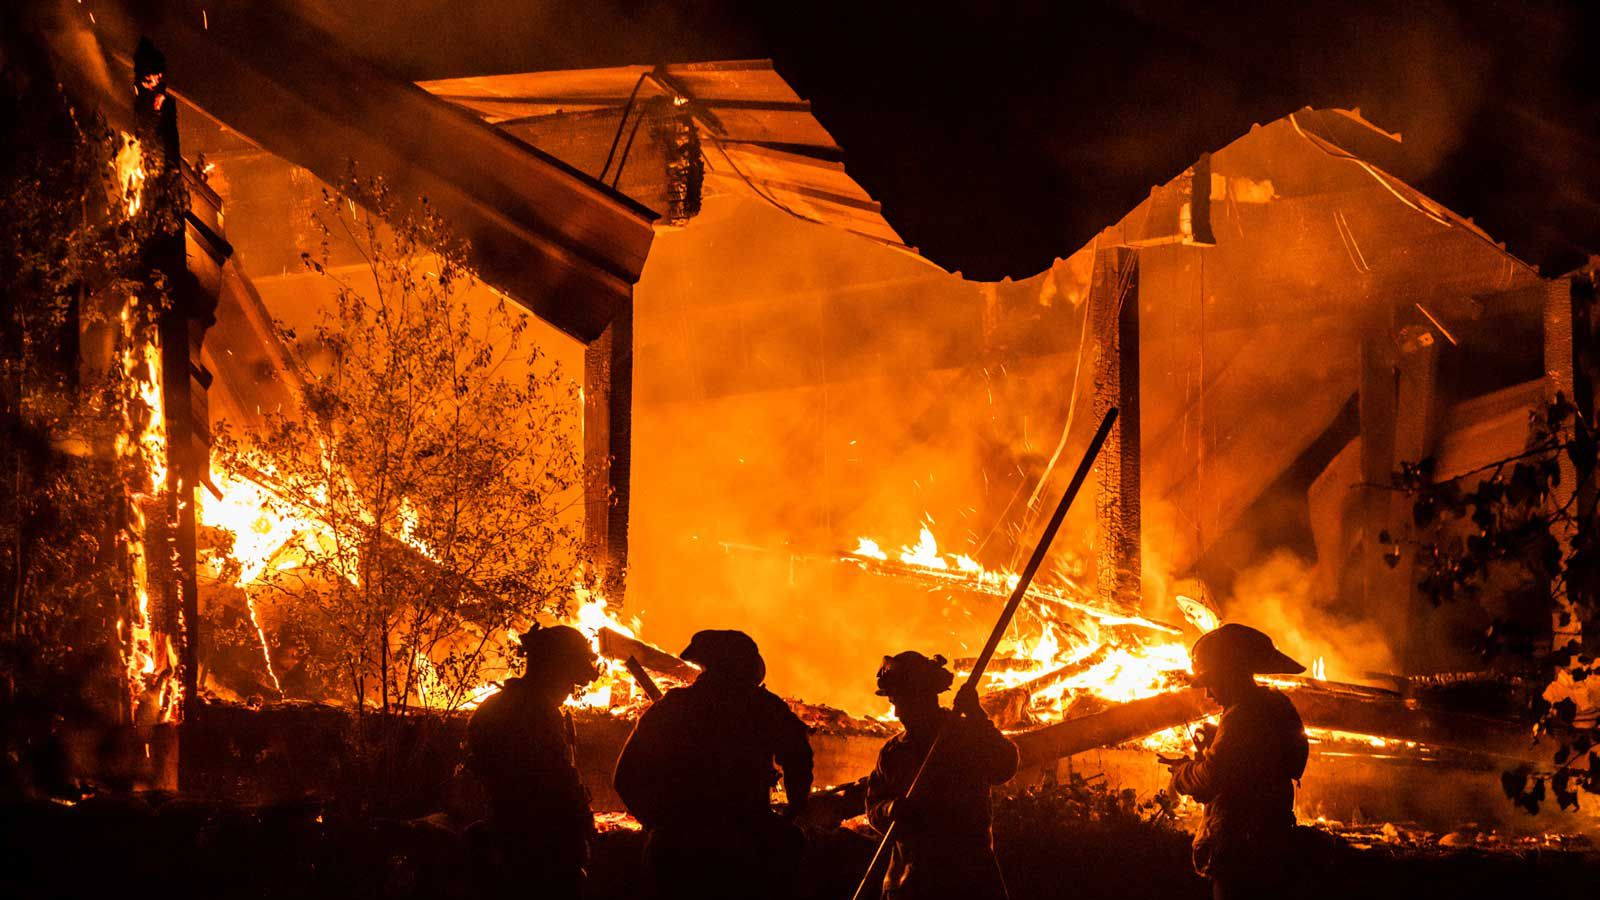 California Fires - Getty Fire - Kincade FIre